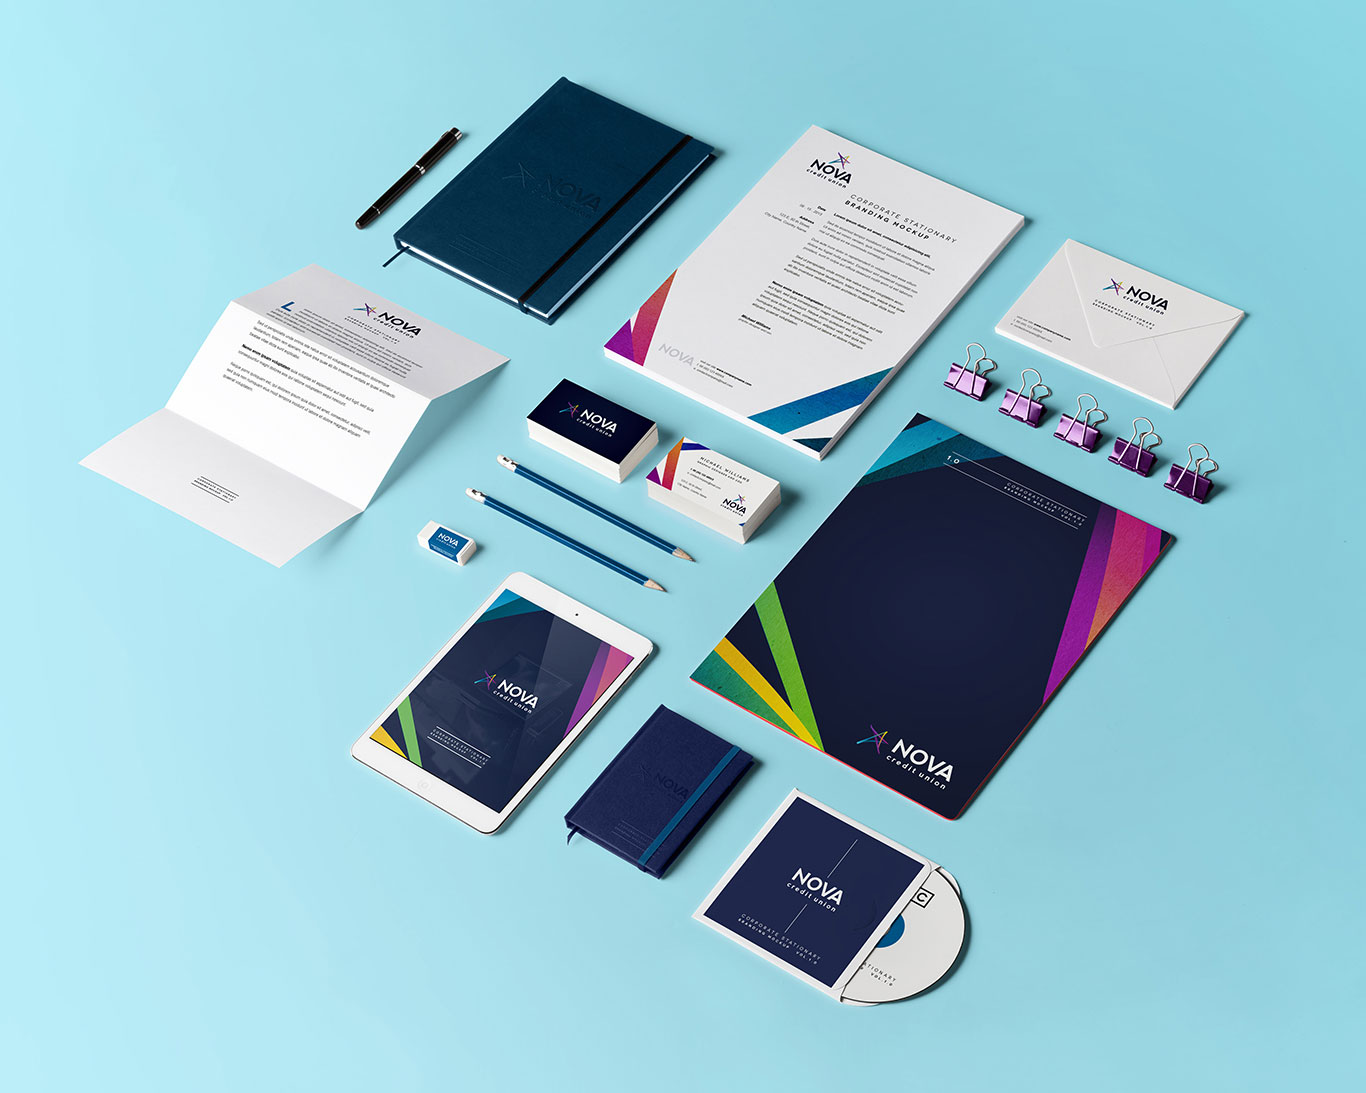 Colorful stationary and other corporate materials designed for Nova Credit Union.